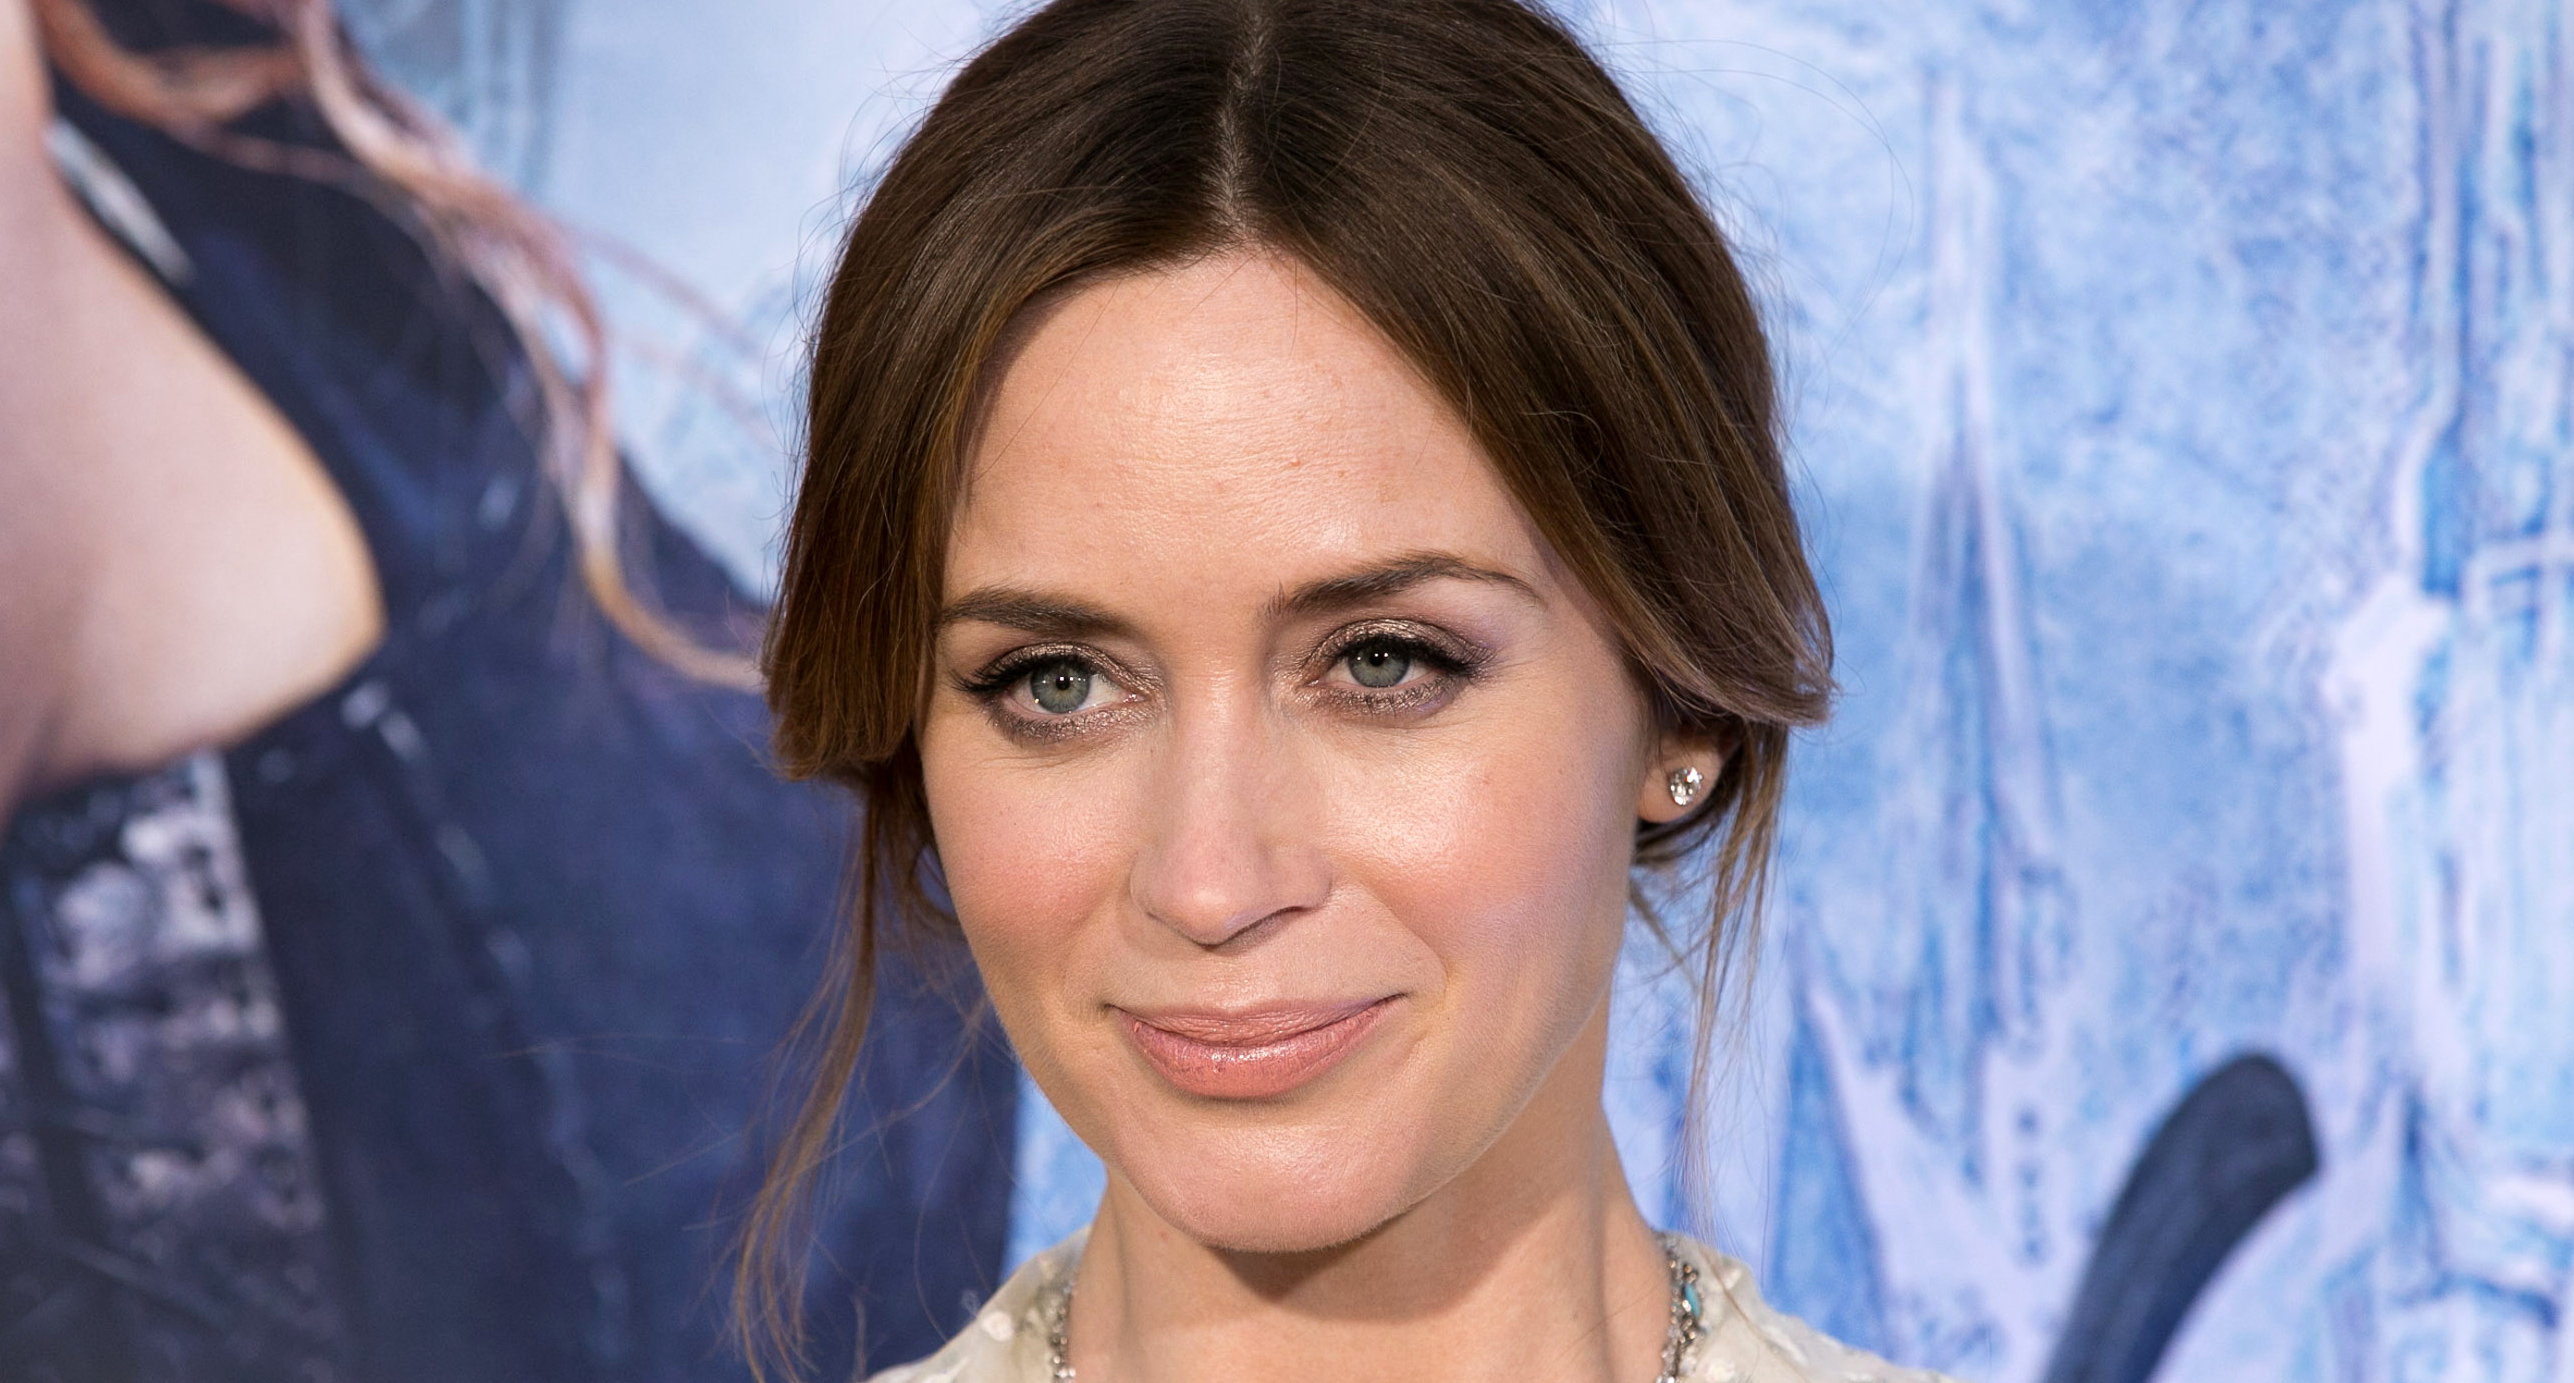 Emily Blunt Debuts Short Blonde Hair Looks Incredible Stylecaster